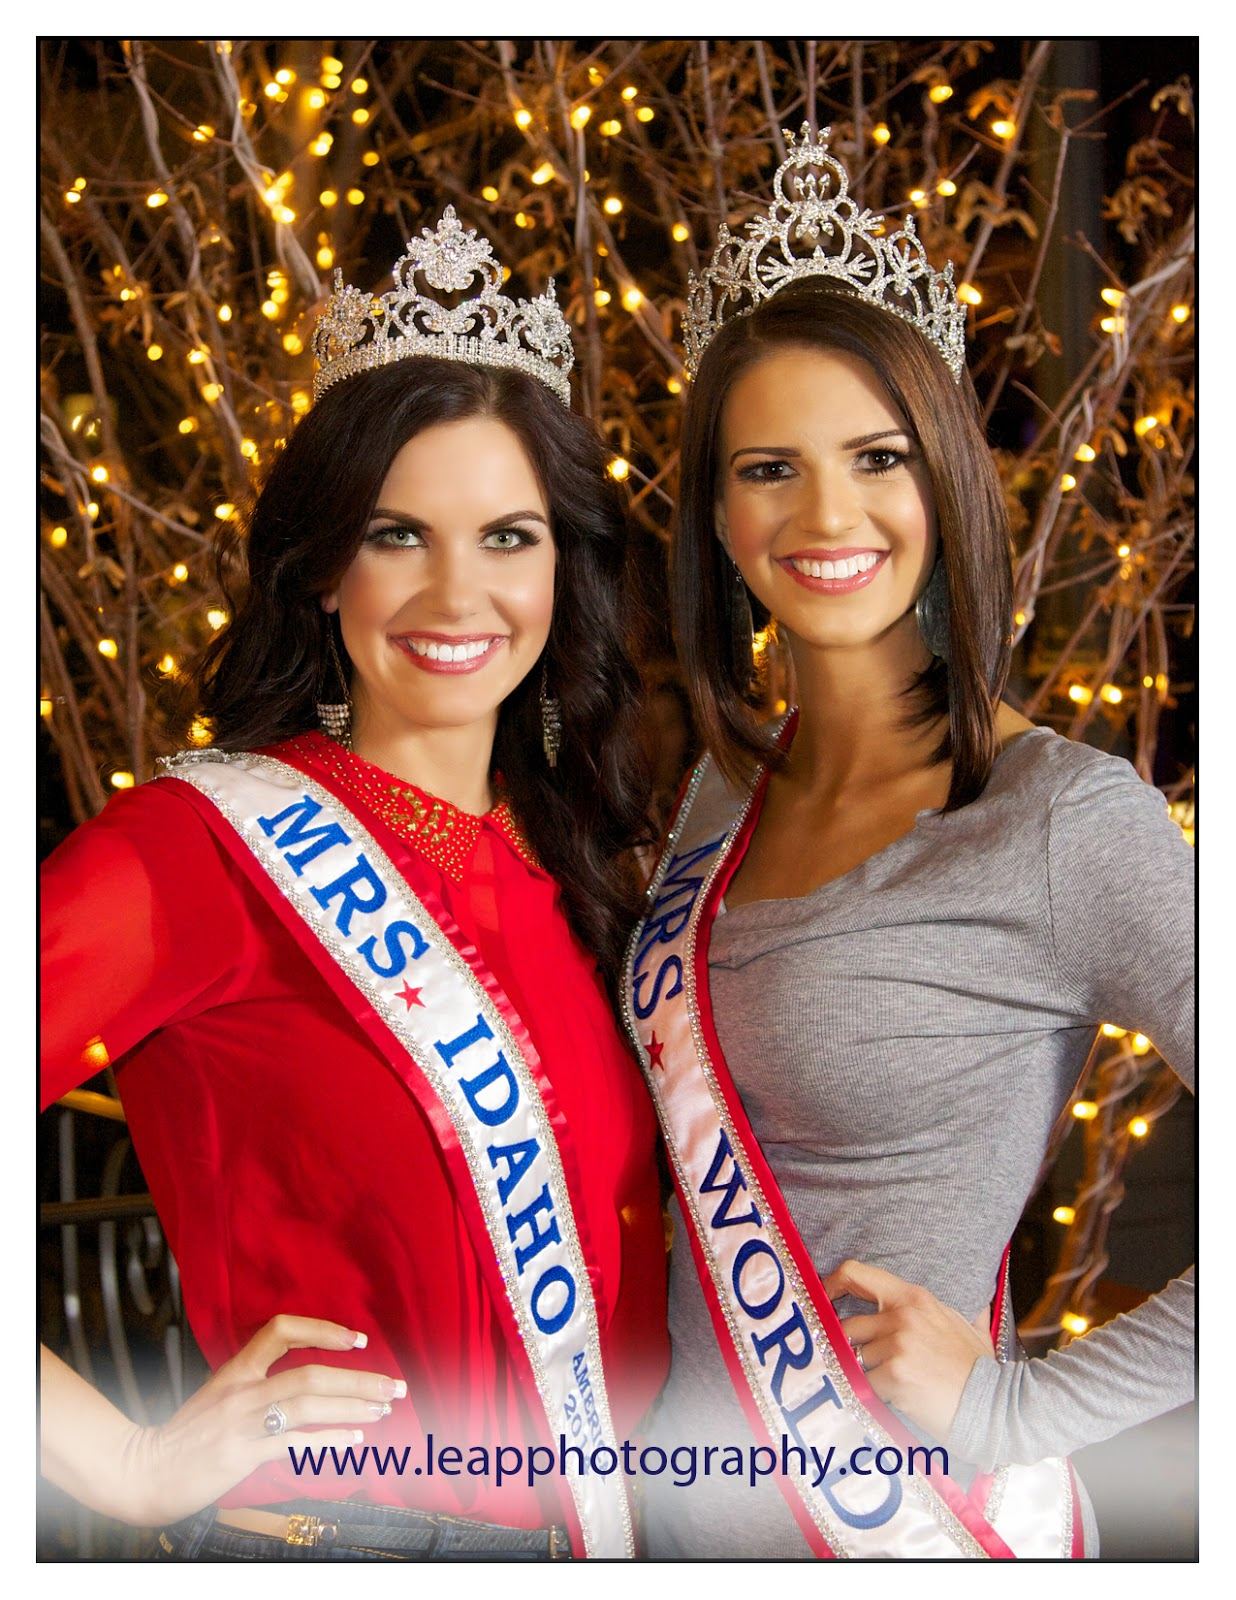 Mrs. Idaho & Mrs. World 2014 in front of twinkle lights